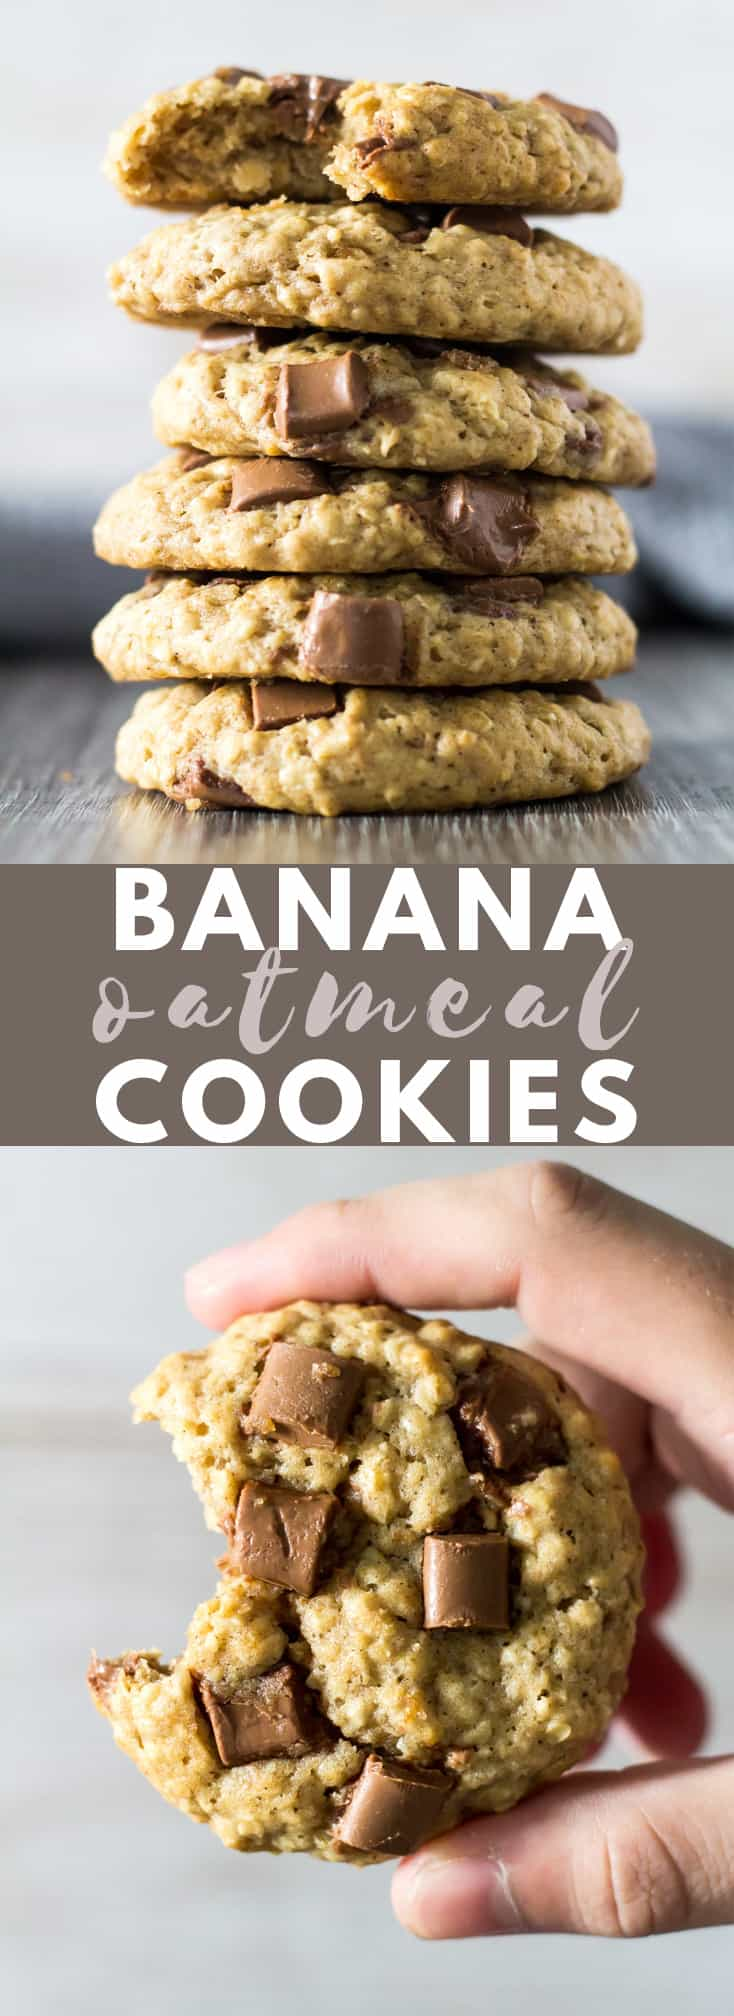 Chocolate Chip Banana Oatmeal Cookies - Delicious thick and chewy oatmeal cookies that are loaded with banana flavour, and studded with chocolate chips! #chocolatechipcookies #banana #oatmeal #cookies #cookierecipes #breakfast #breakfastcookies